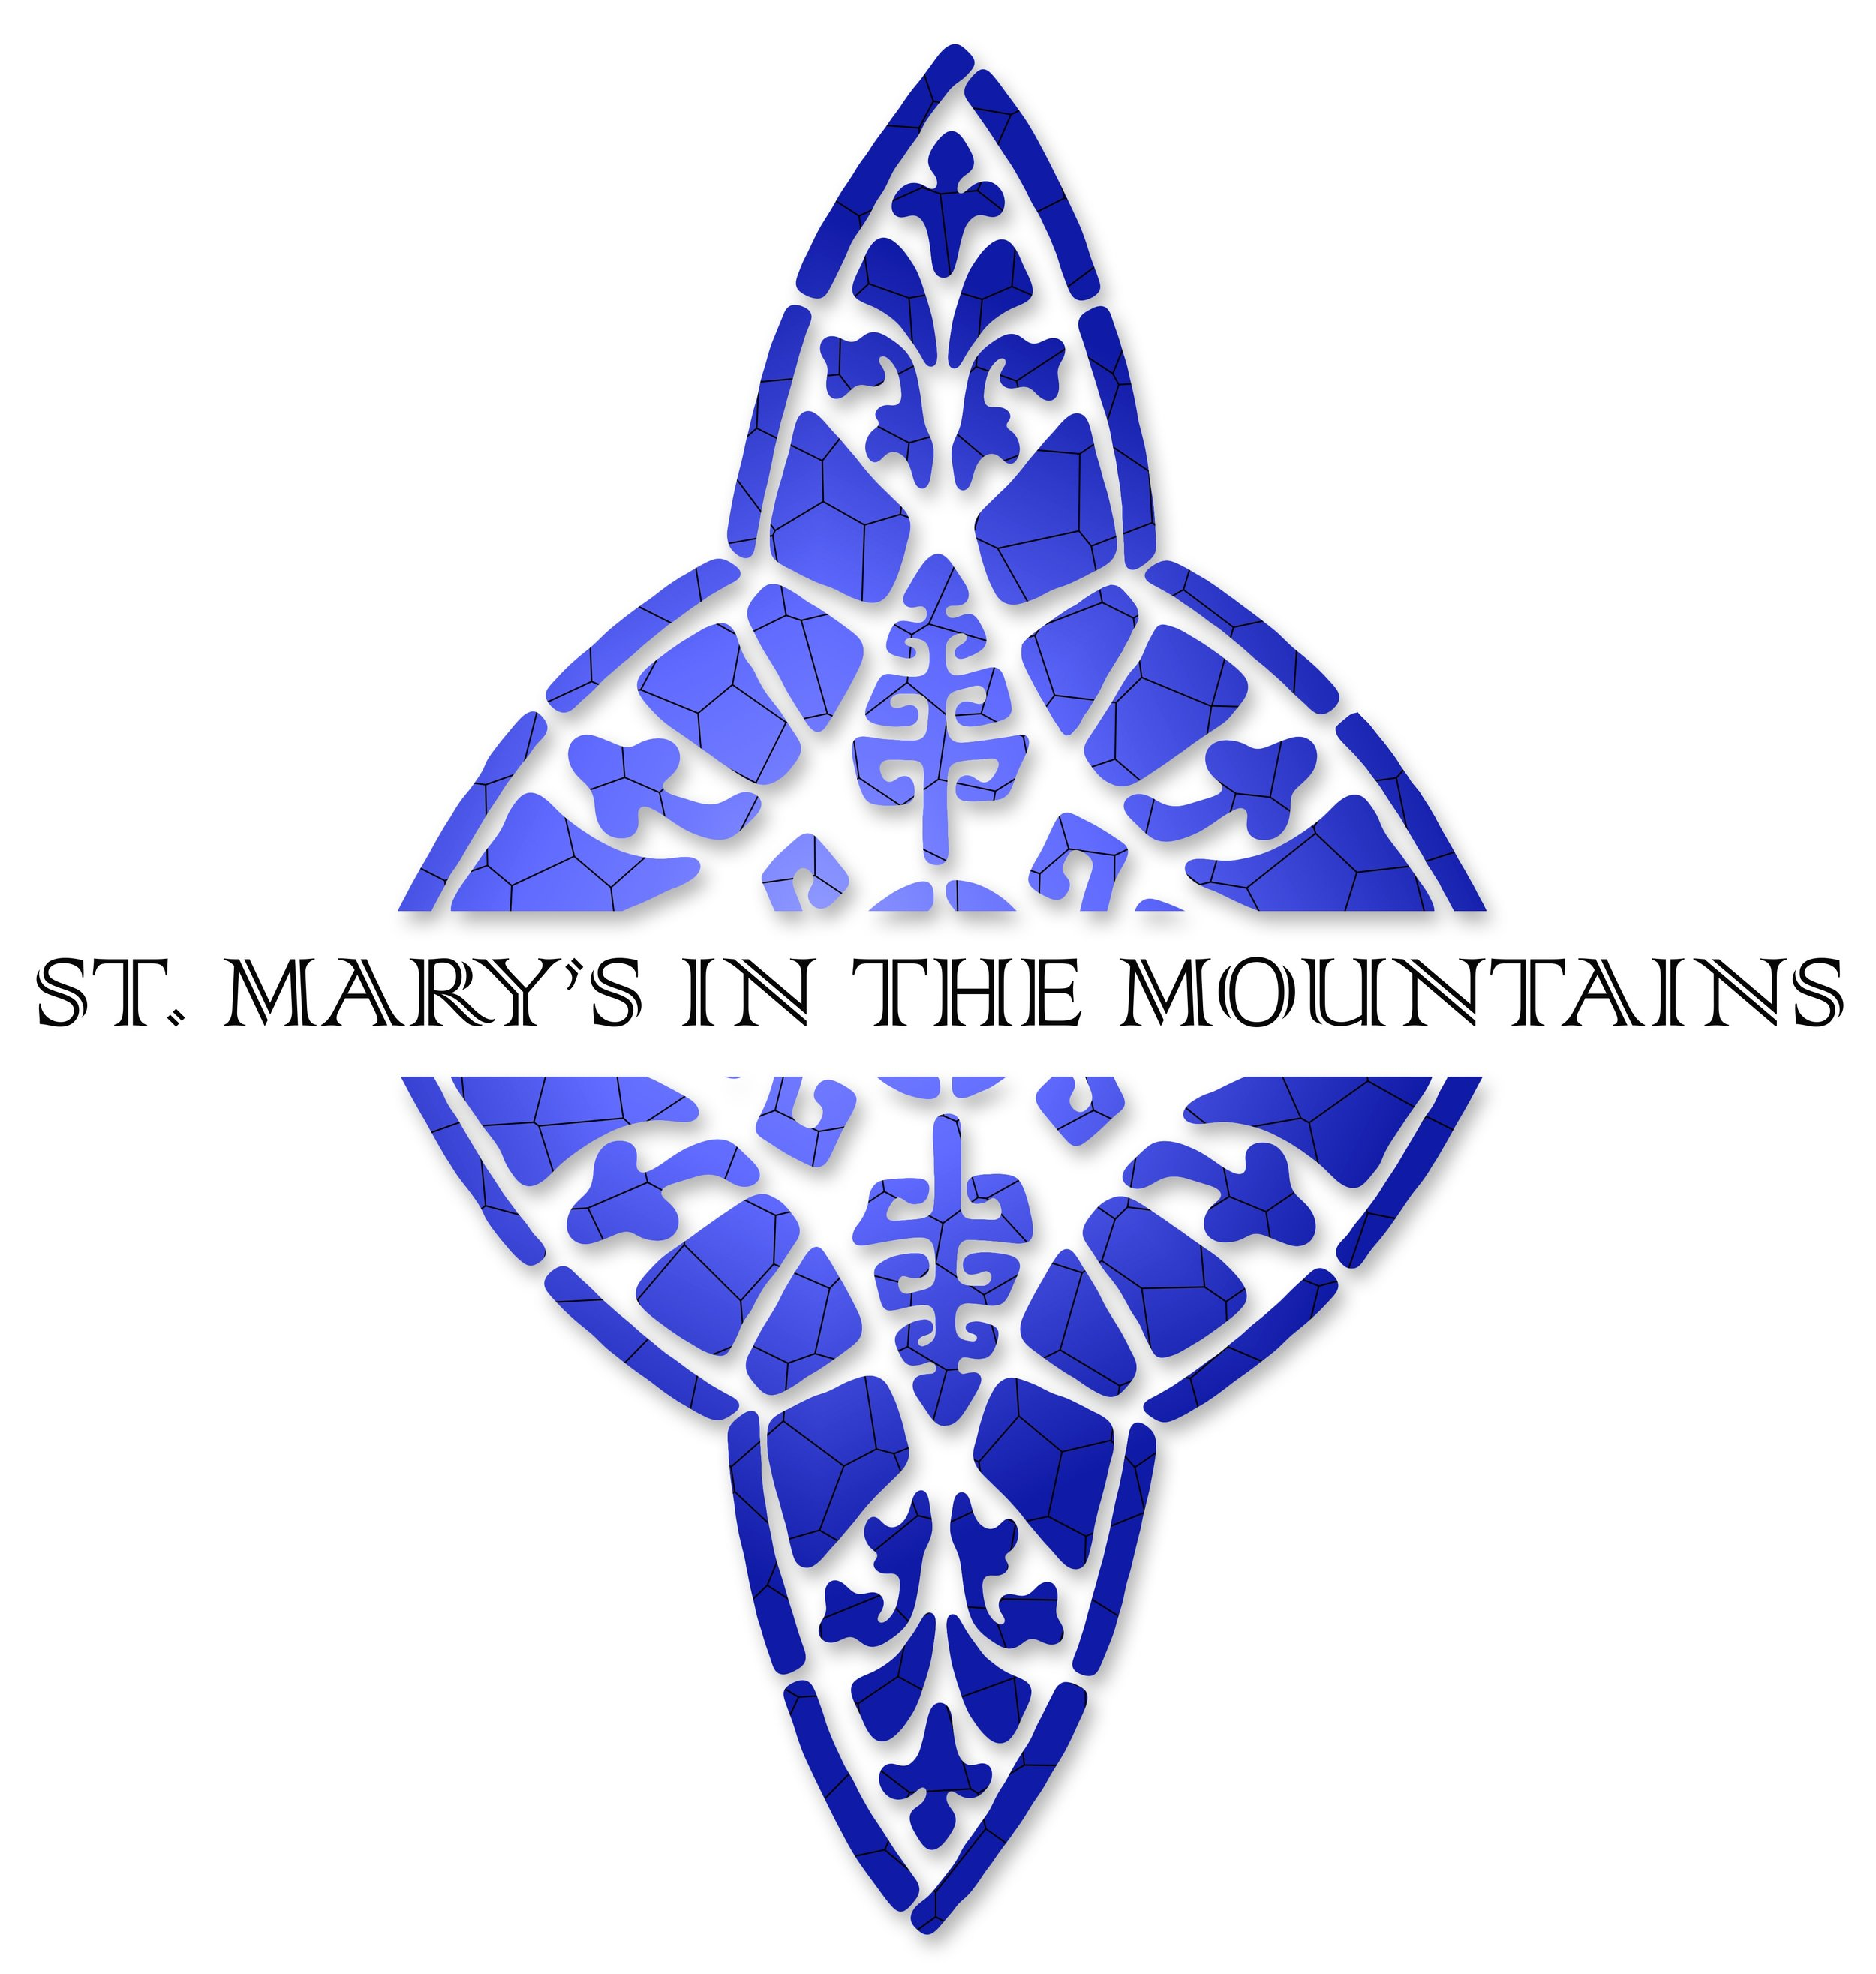 ST. MARY'S IN THE MOUNTAINS CHURCH logo and letterhead branding design for church in Virginia City, Nevada